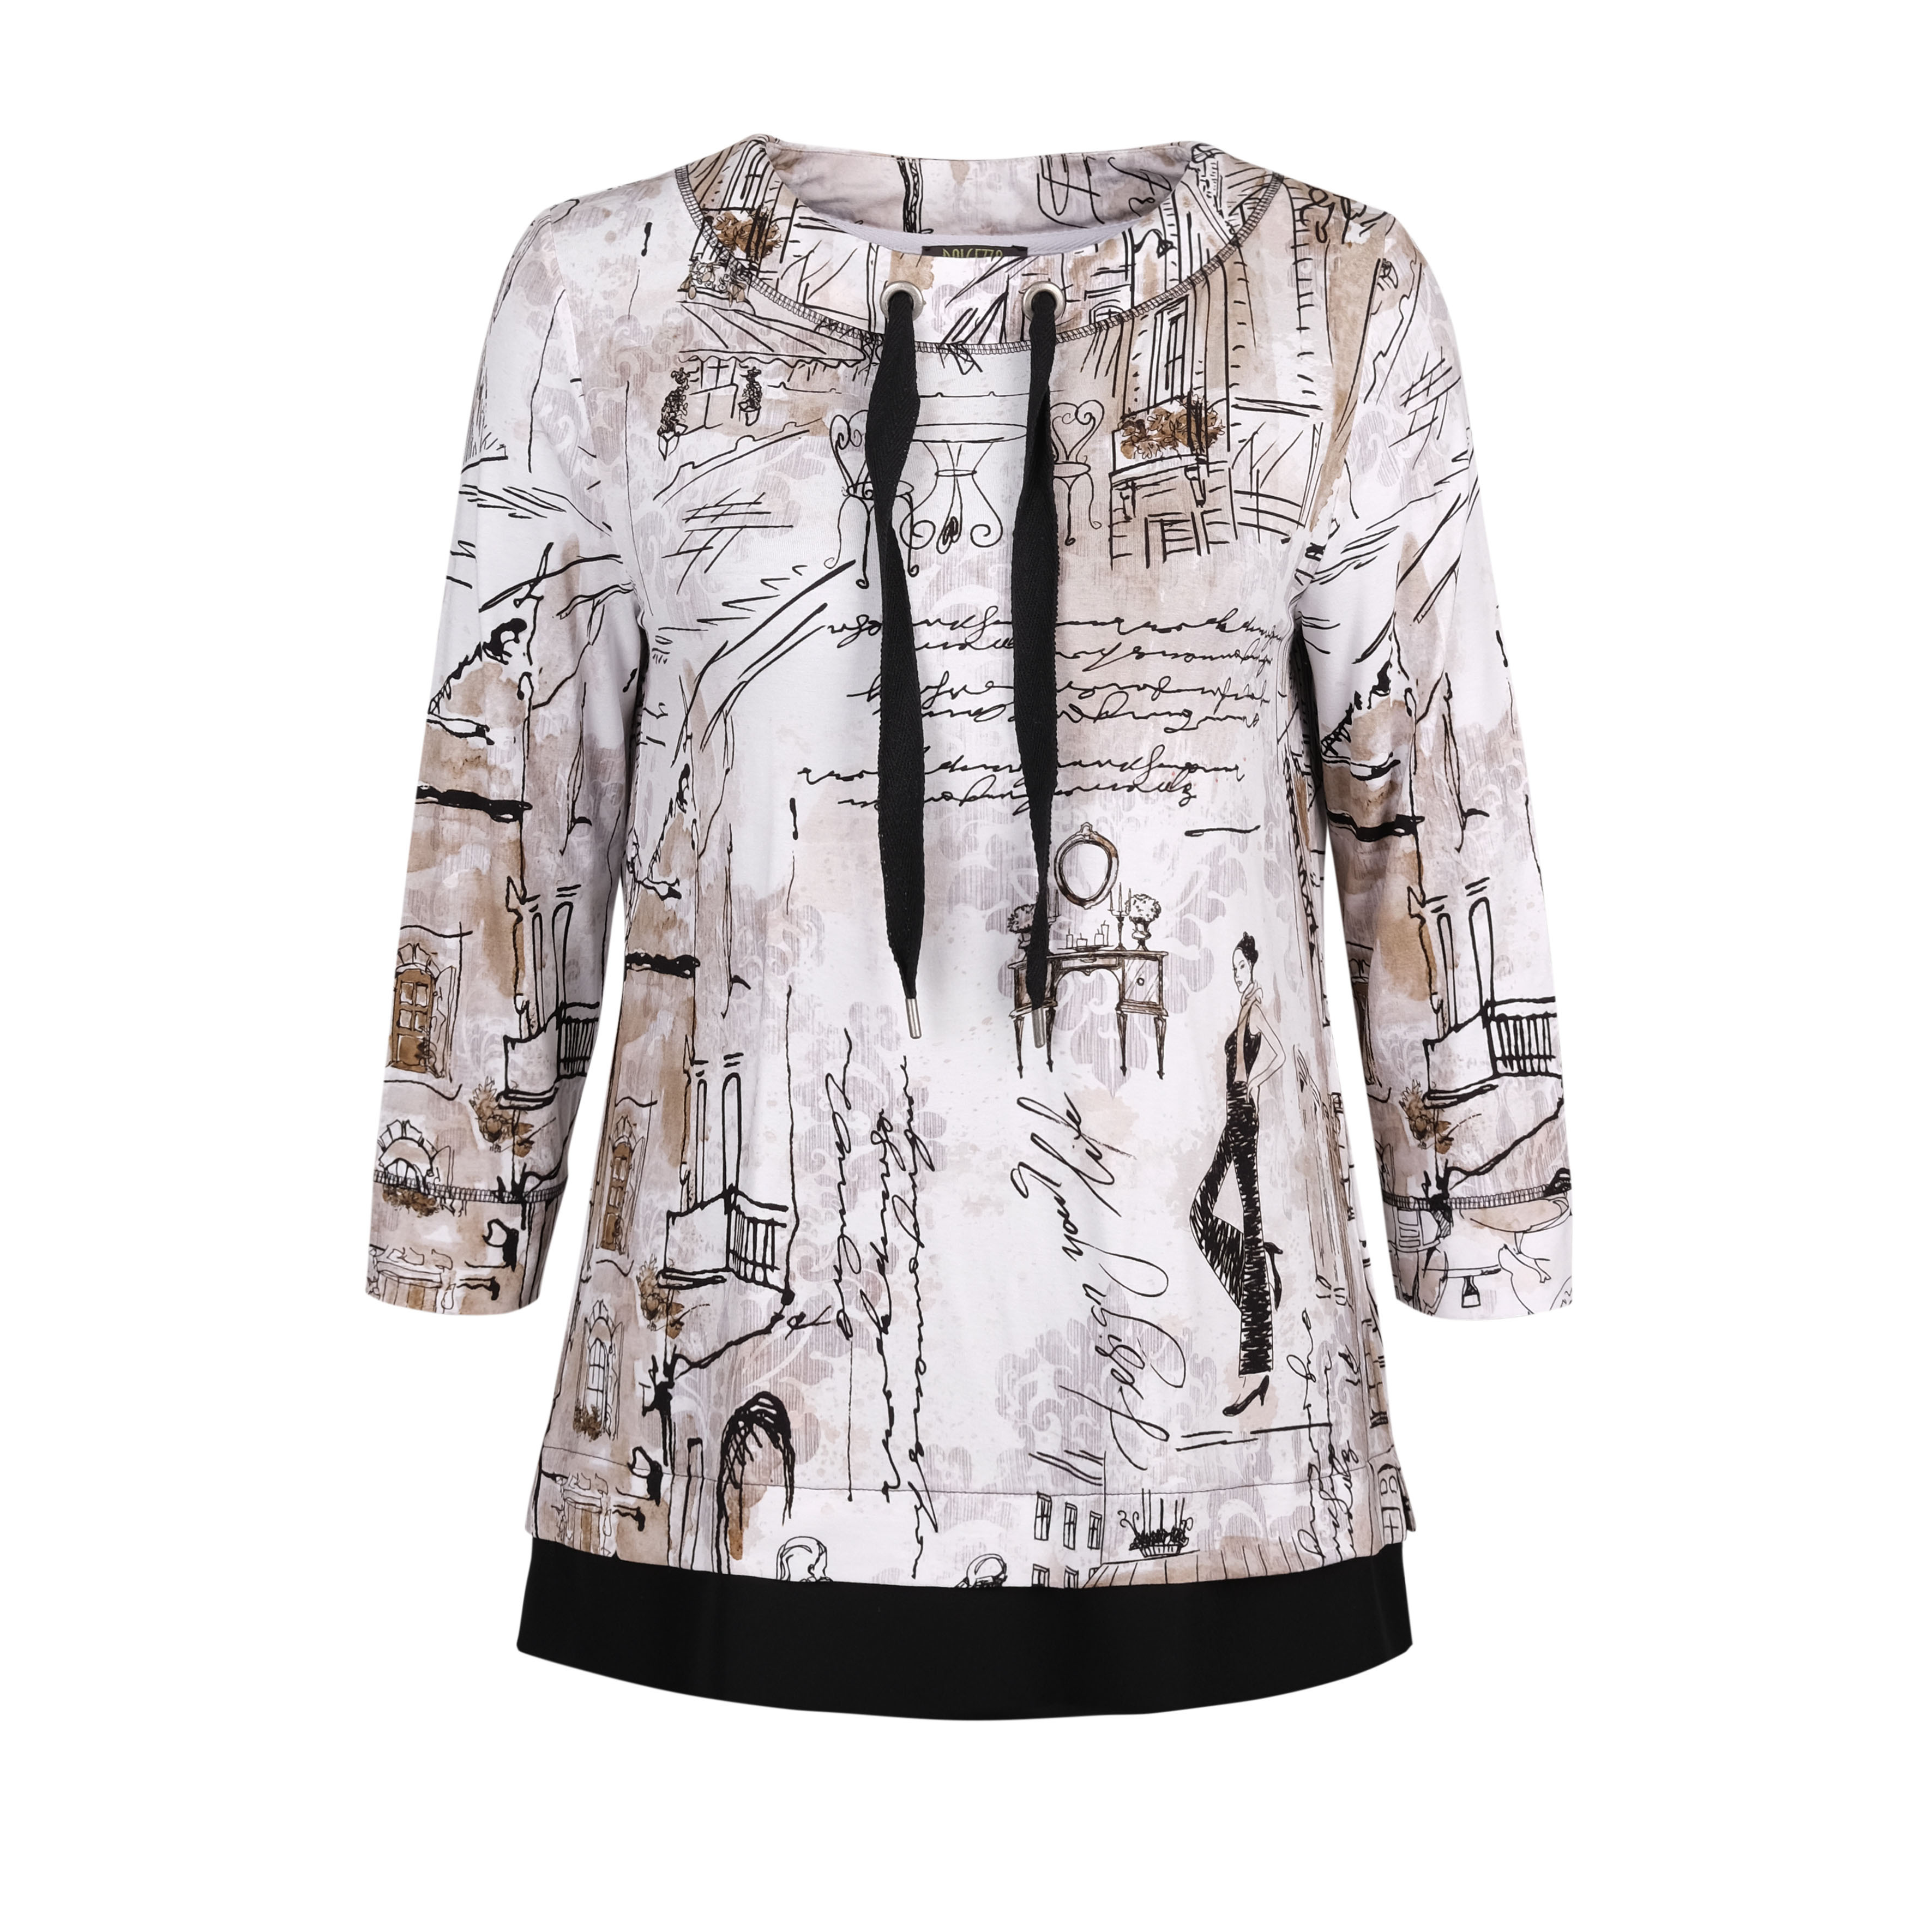 Dolcezza: Emily Once In Paris Art Pullover Dolcezza_70131